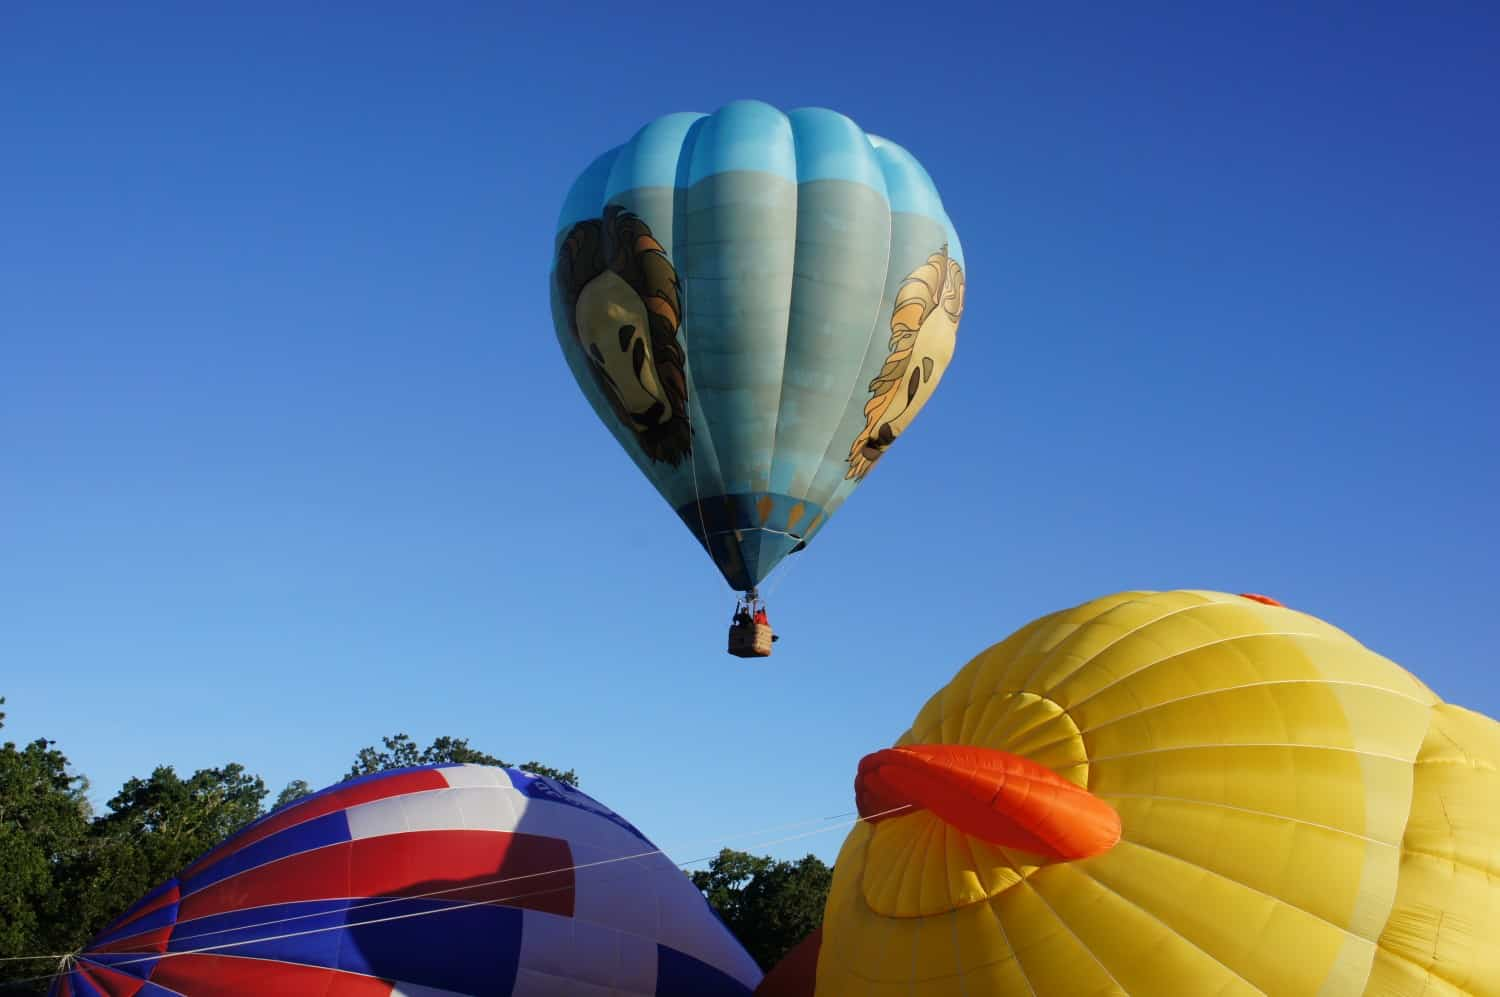 Happening Upon Hot Air Balloons